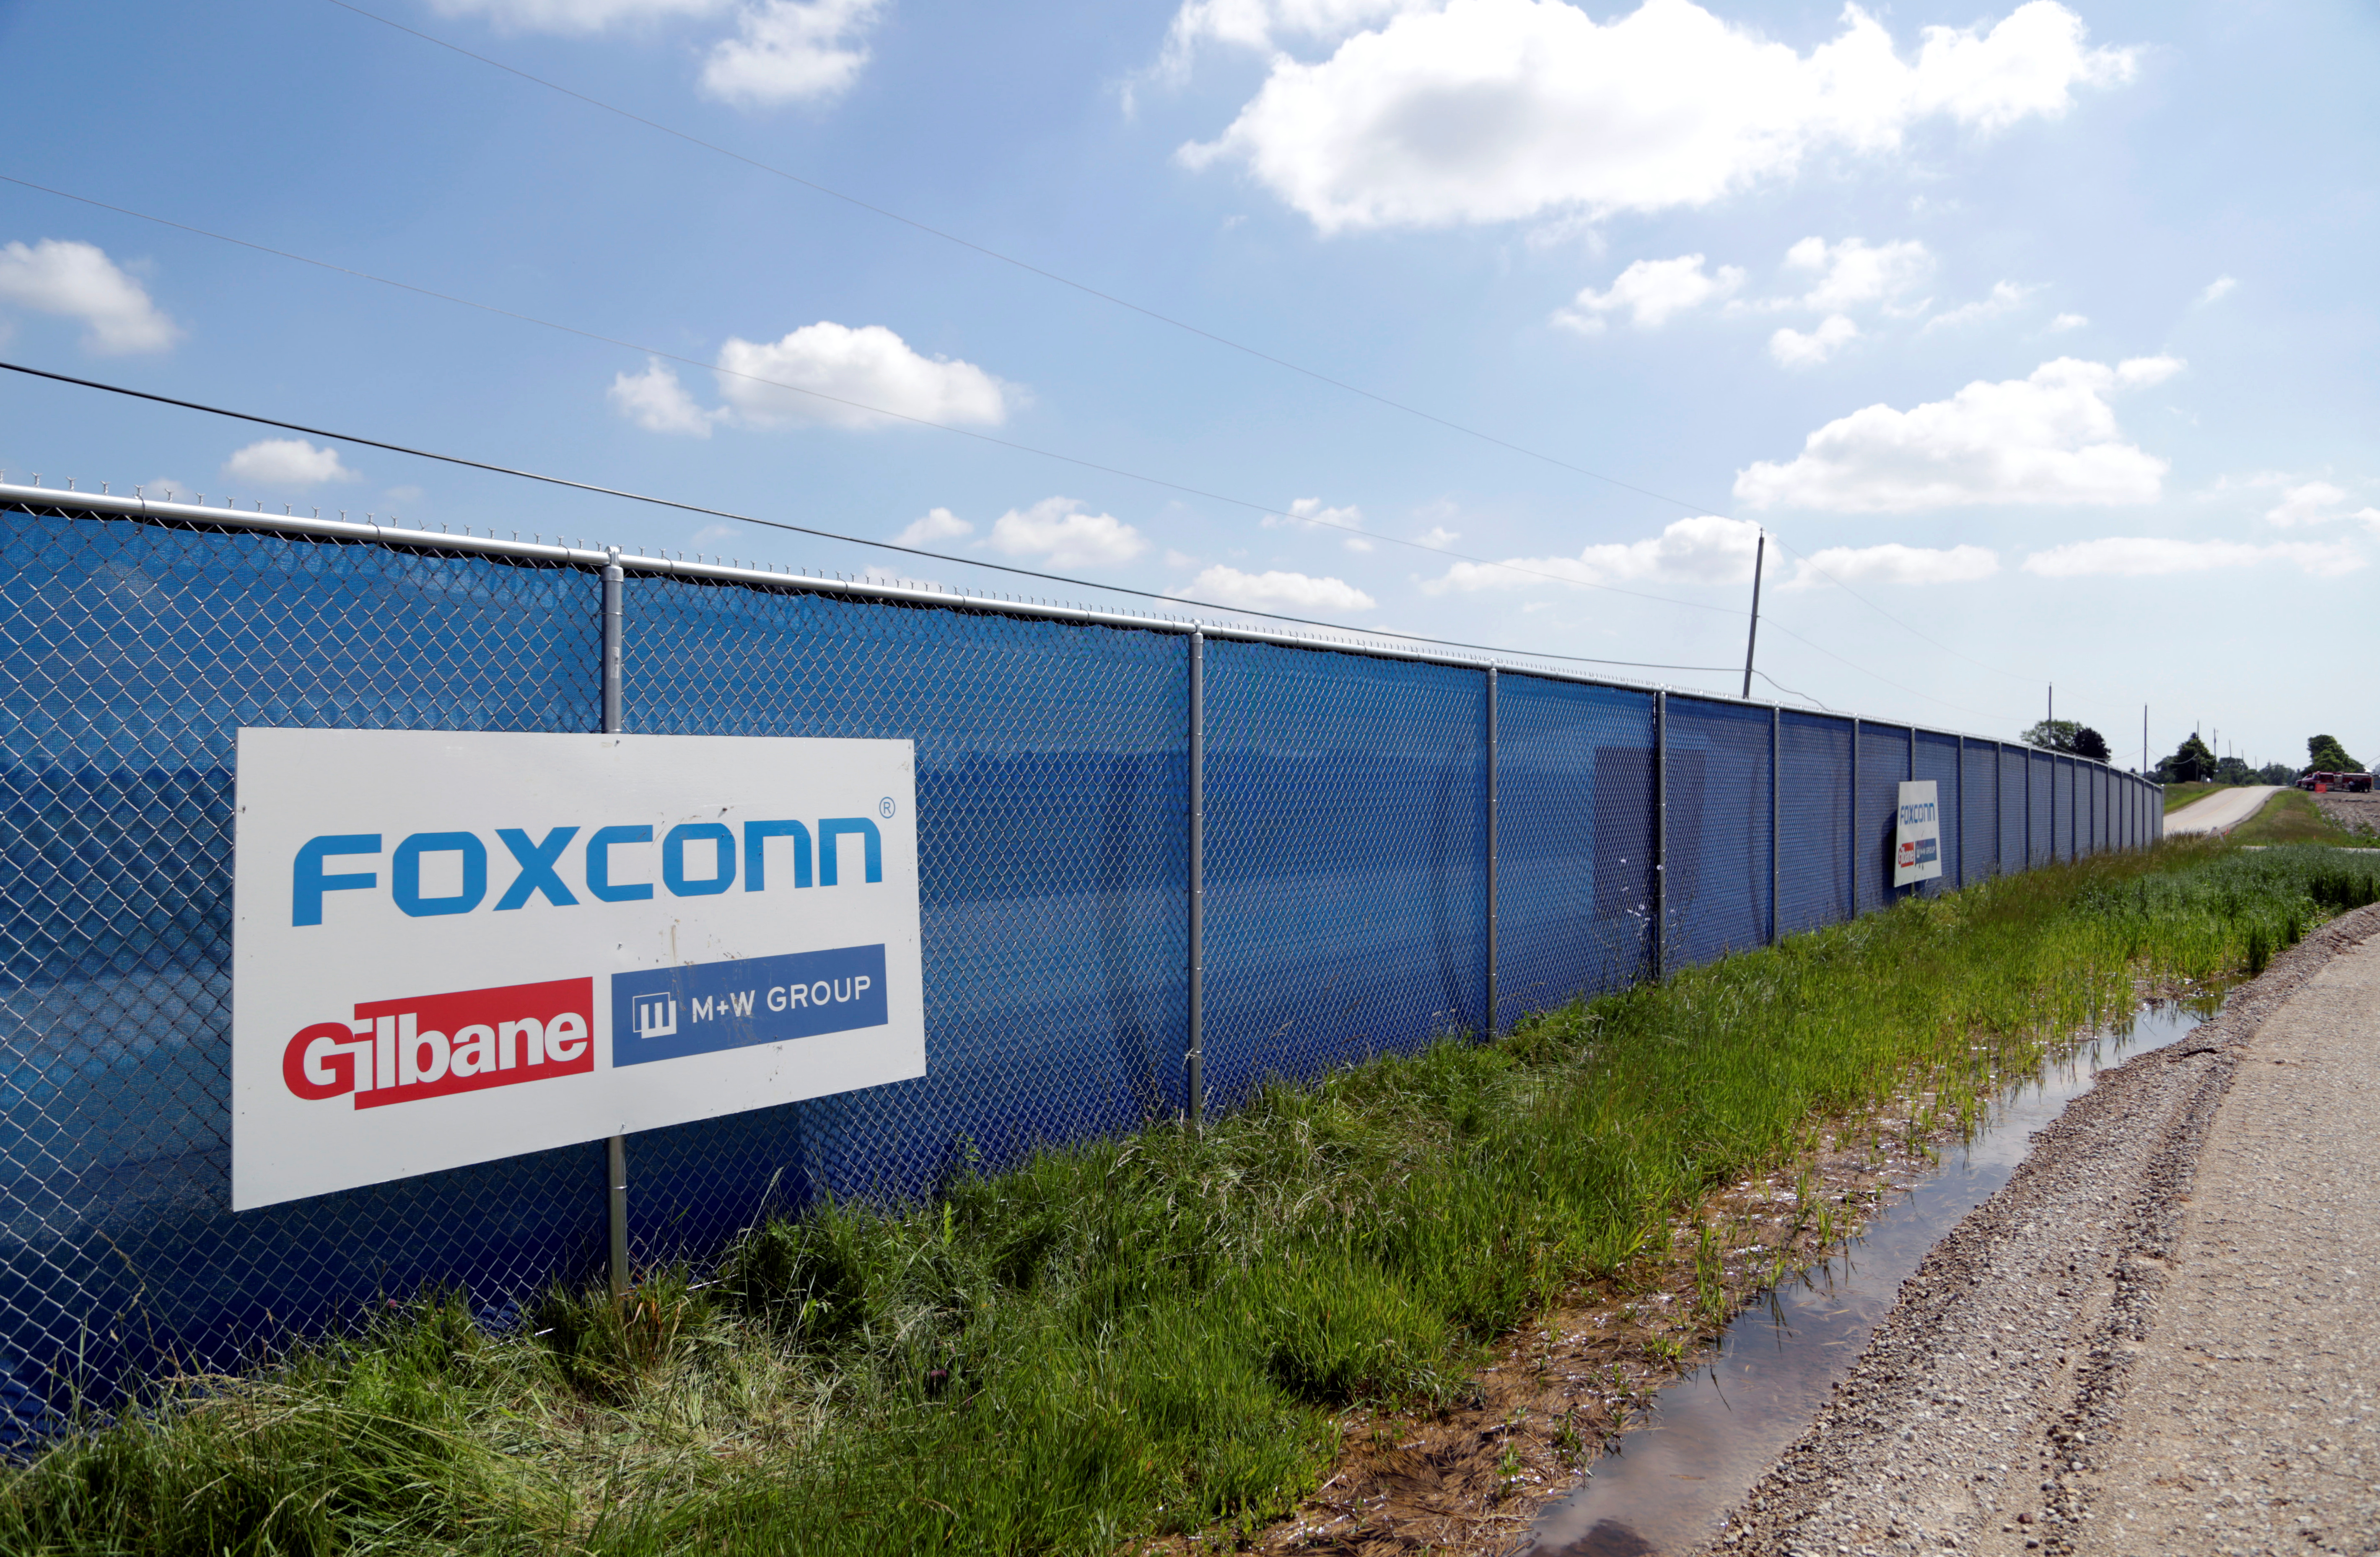 A FoxConn logo is seen before the arrival of U.S. President Donald Trump as he participates in the Foxconn Technology Group groundbreaking ceremony for its LCD manufacturing campus, in Mount Pleasant, Wisconsin, U.S., June 28, 2018.  REUTERS/Darren Hauck/Files